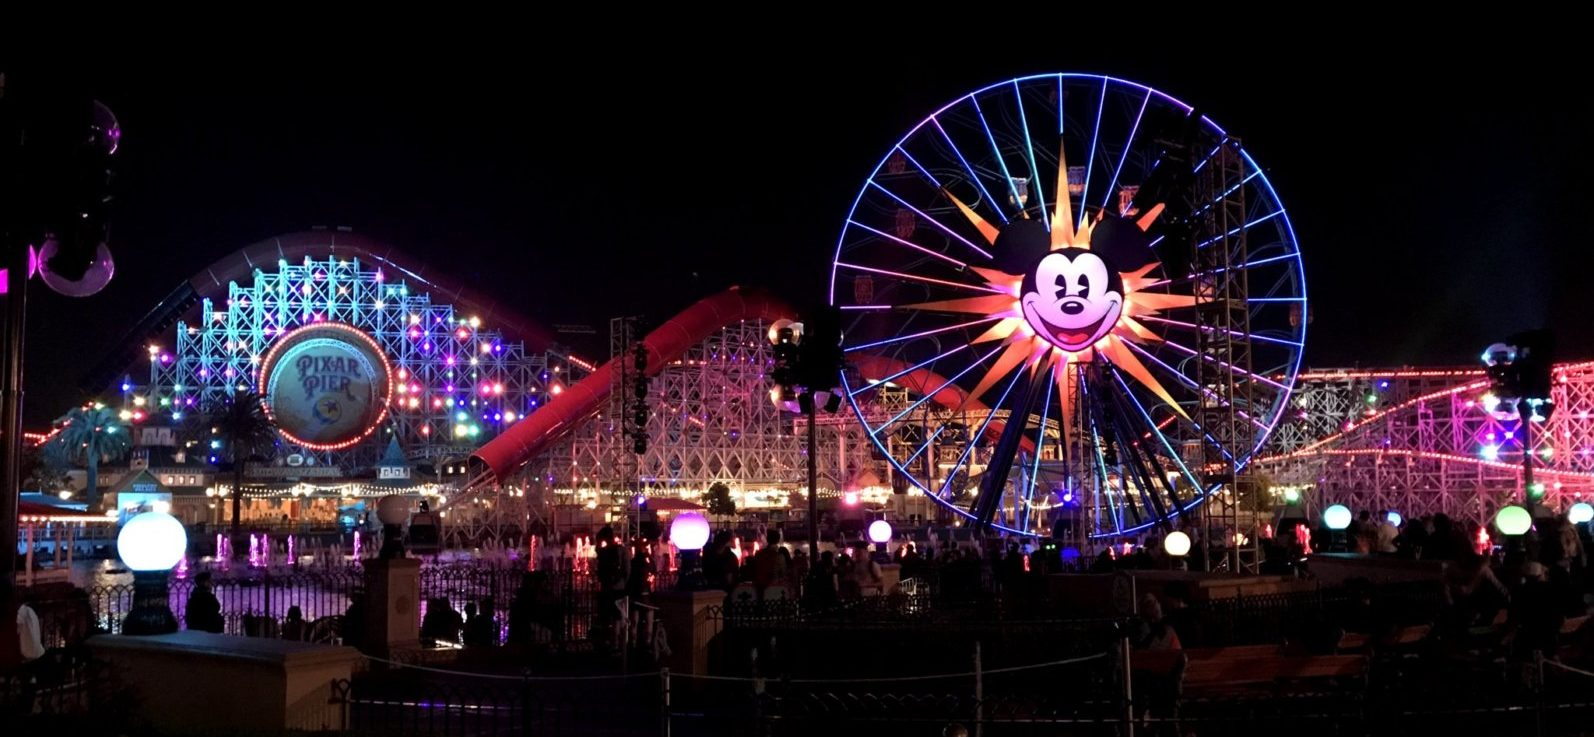 The Most Magical Disneyland